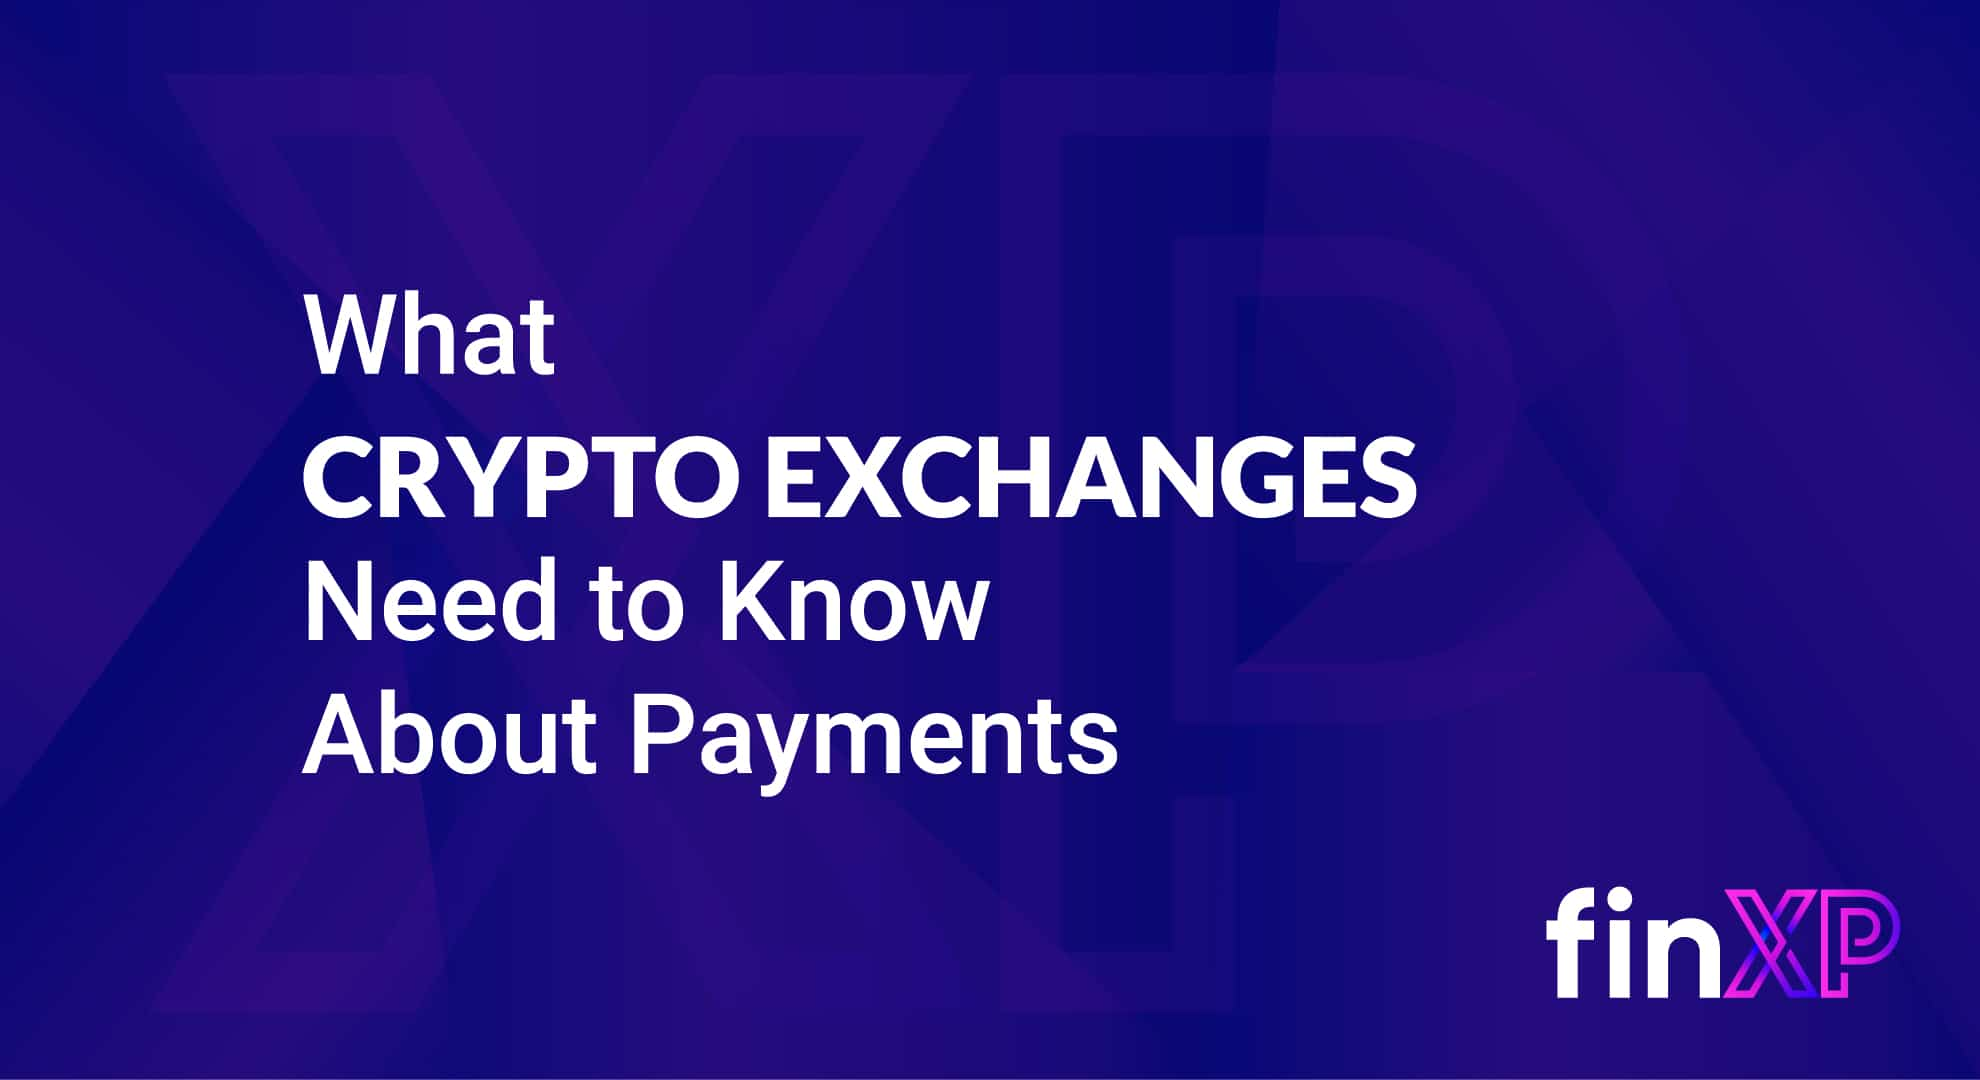 What Crypto Exchanges Need to Know About Payments